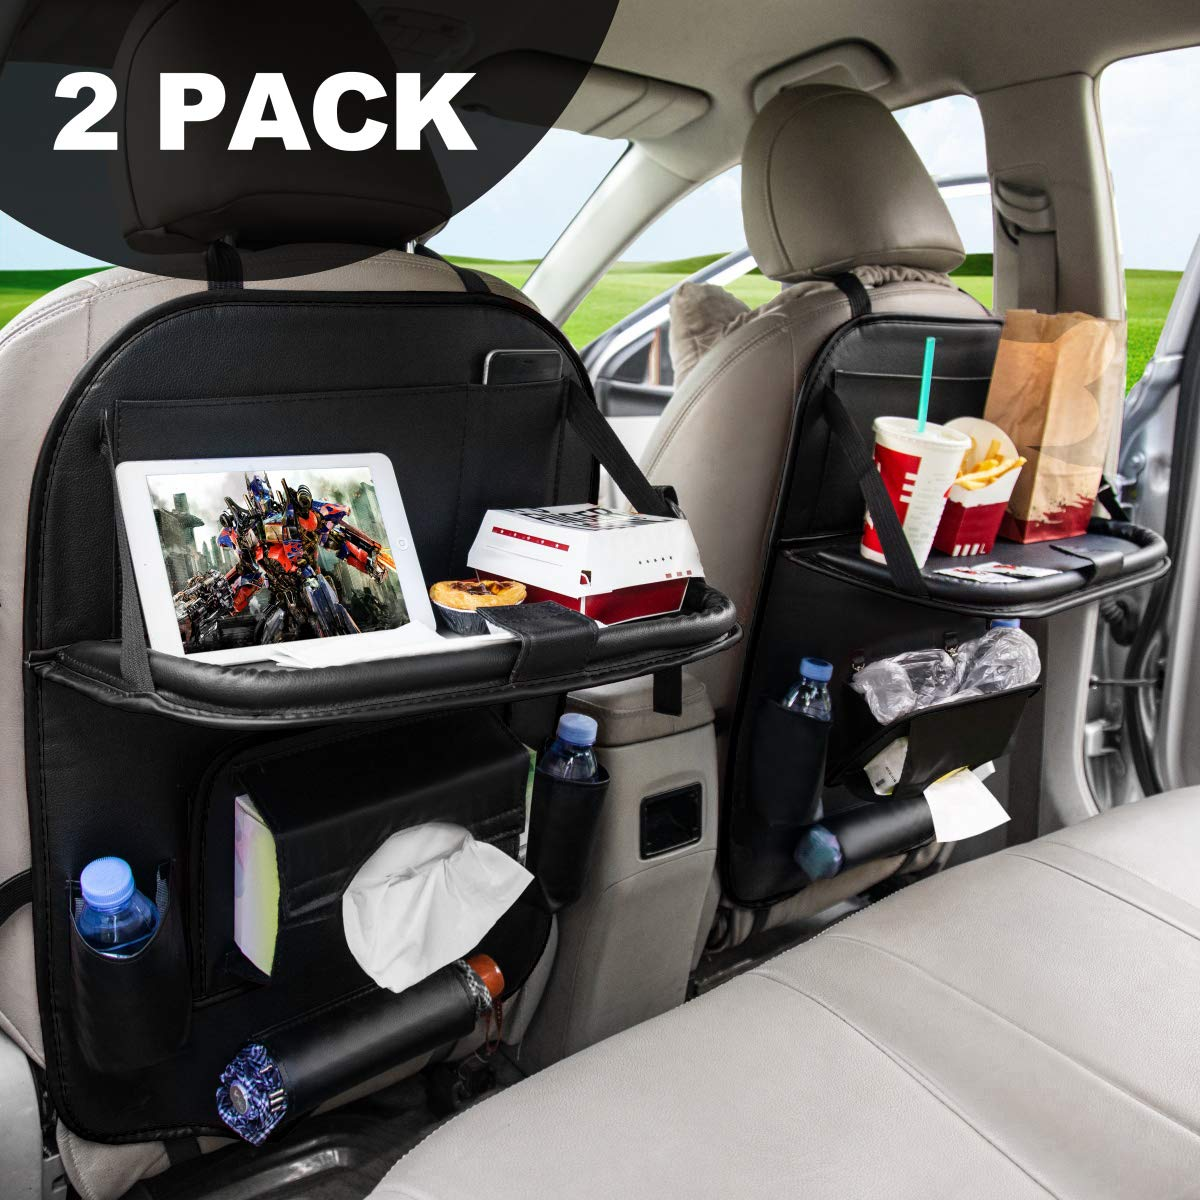 Car Backseat Organizers,FLY OCEAN Back Seat Organizer and Storage Leather for Kids Toy Bottle Drink Vehicles Travel Accessories (2 Pack)